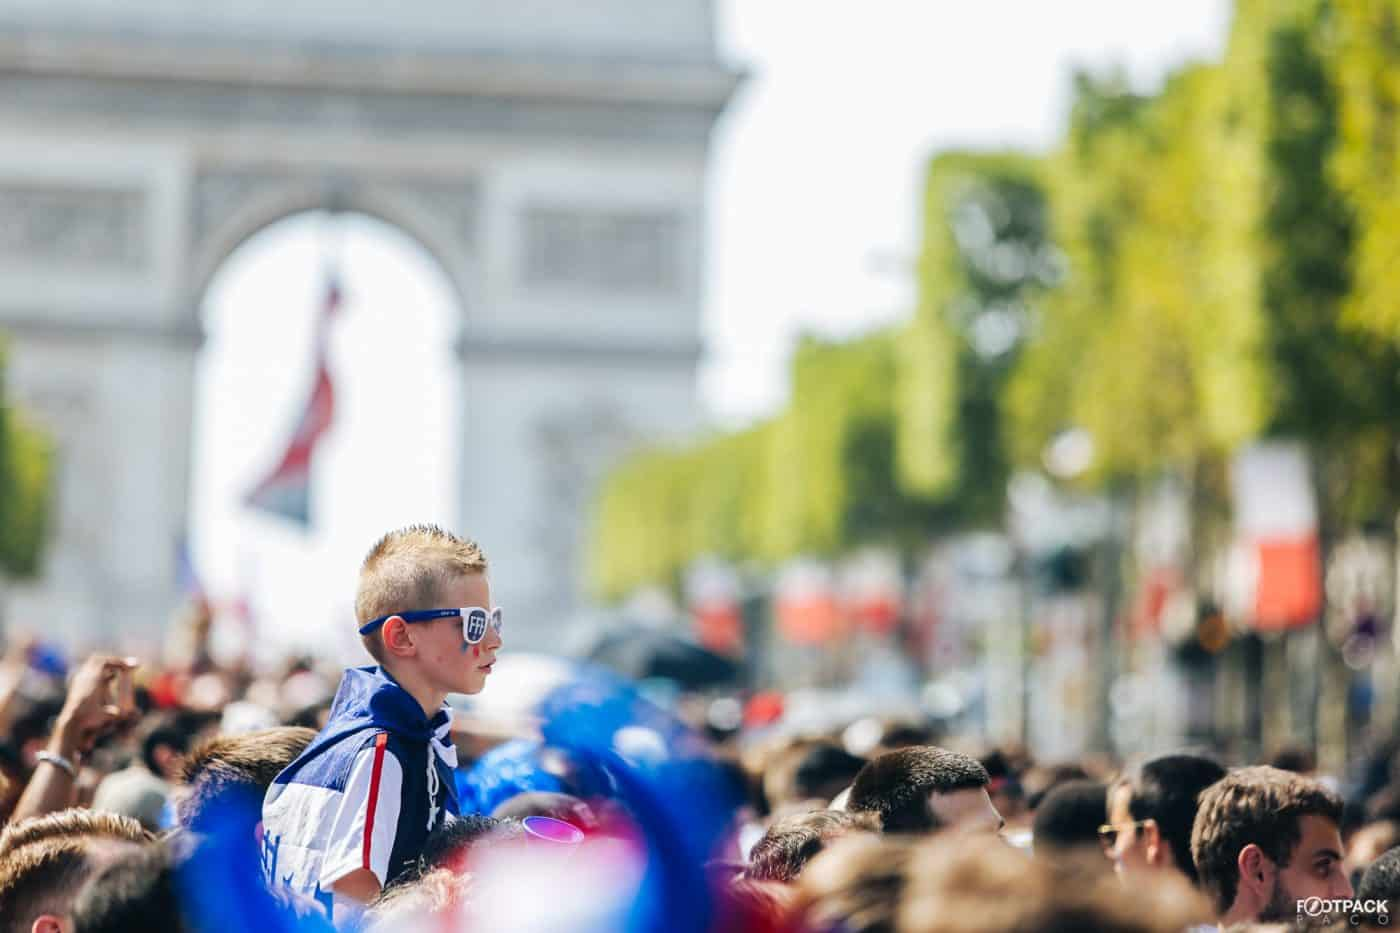 champs-elysee-equipe-de-france-top-50-photos-footpack